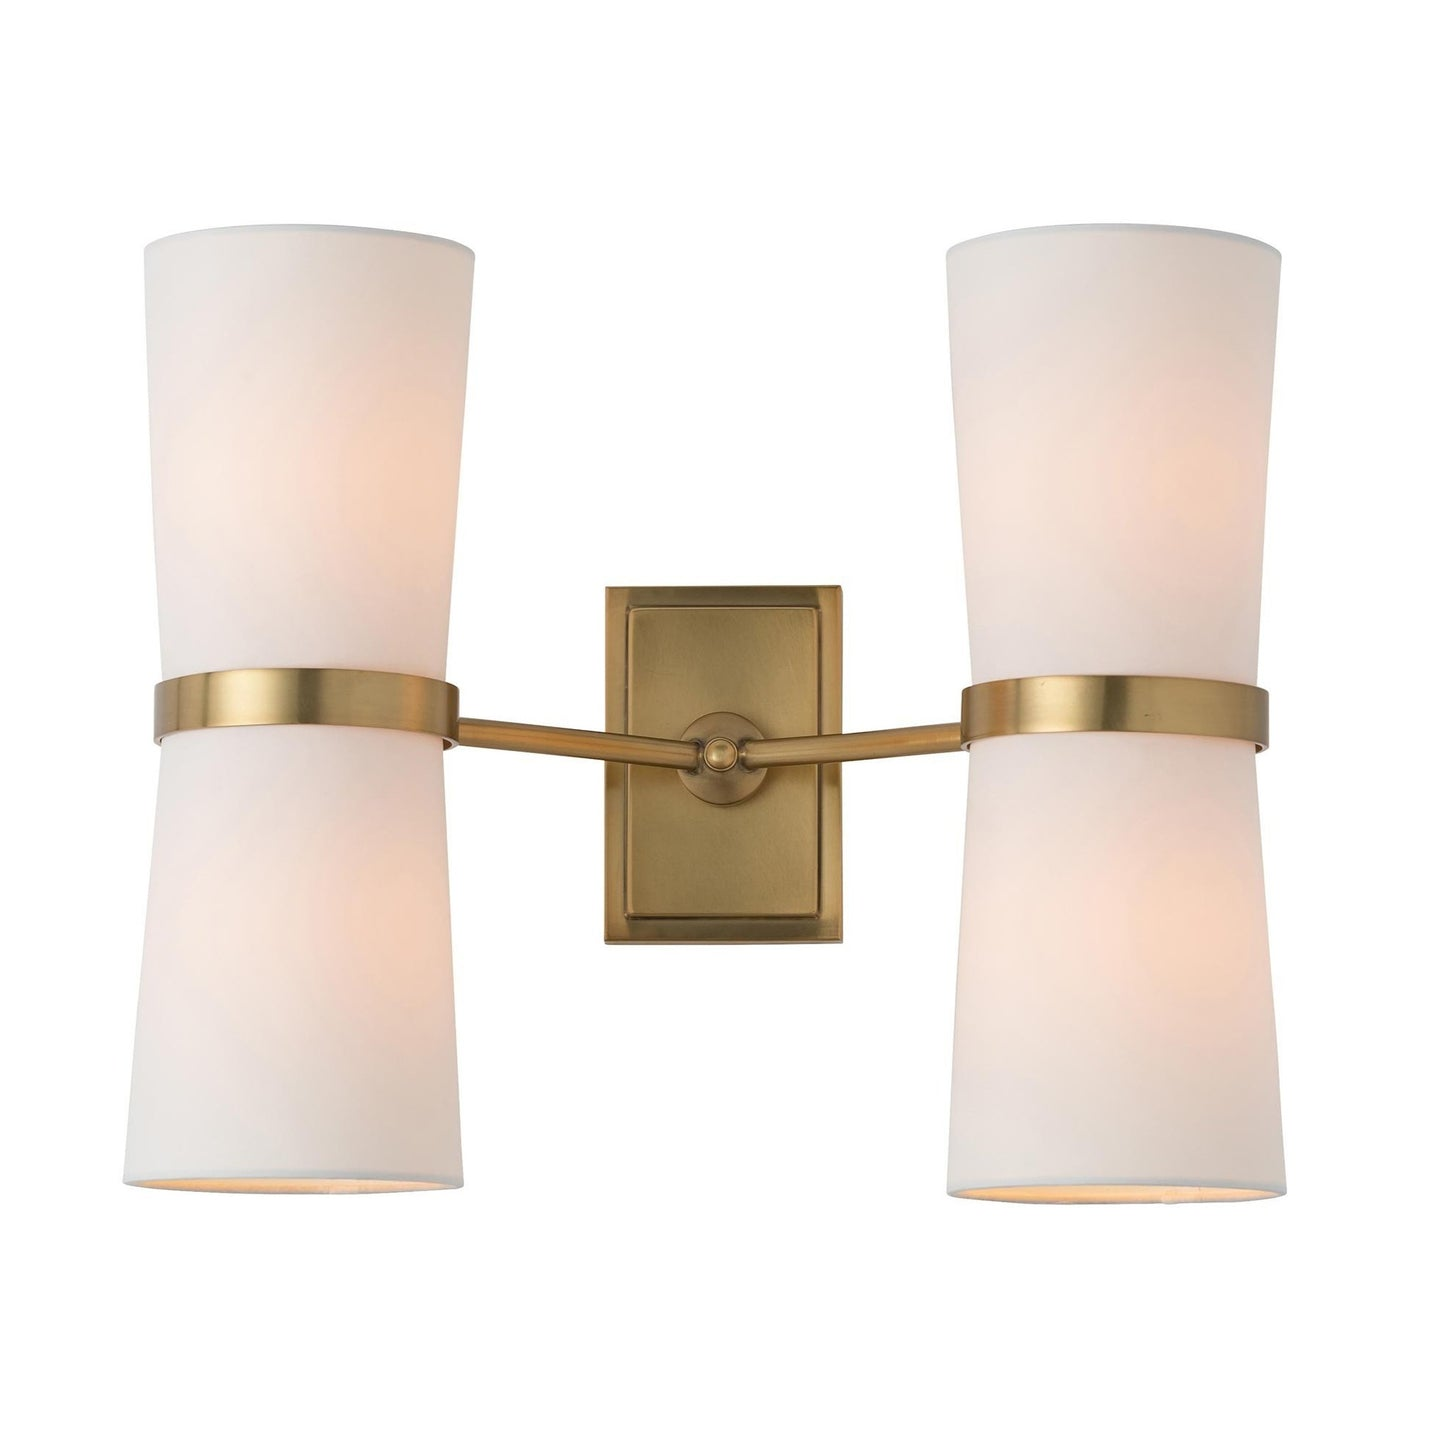 Arteriors Home Inwood Sconce Brass